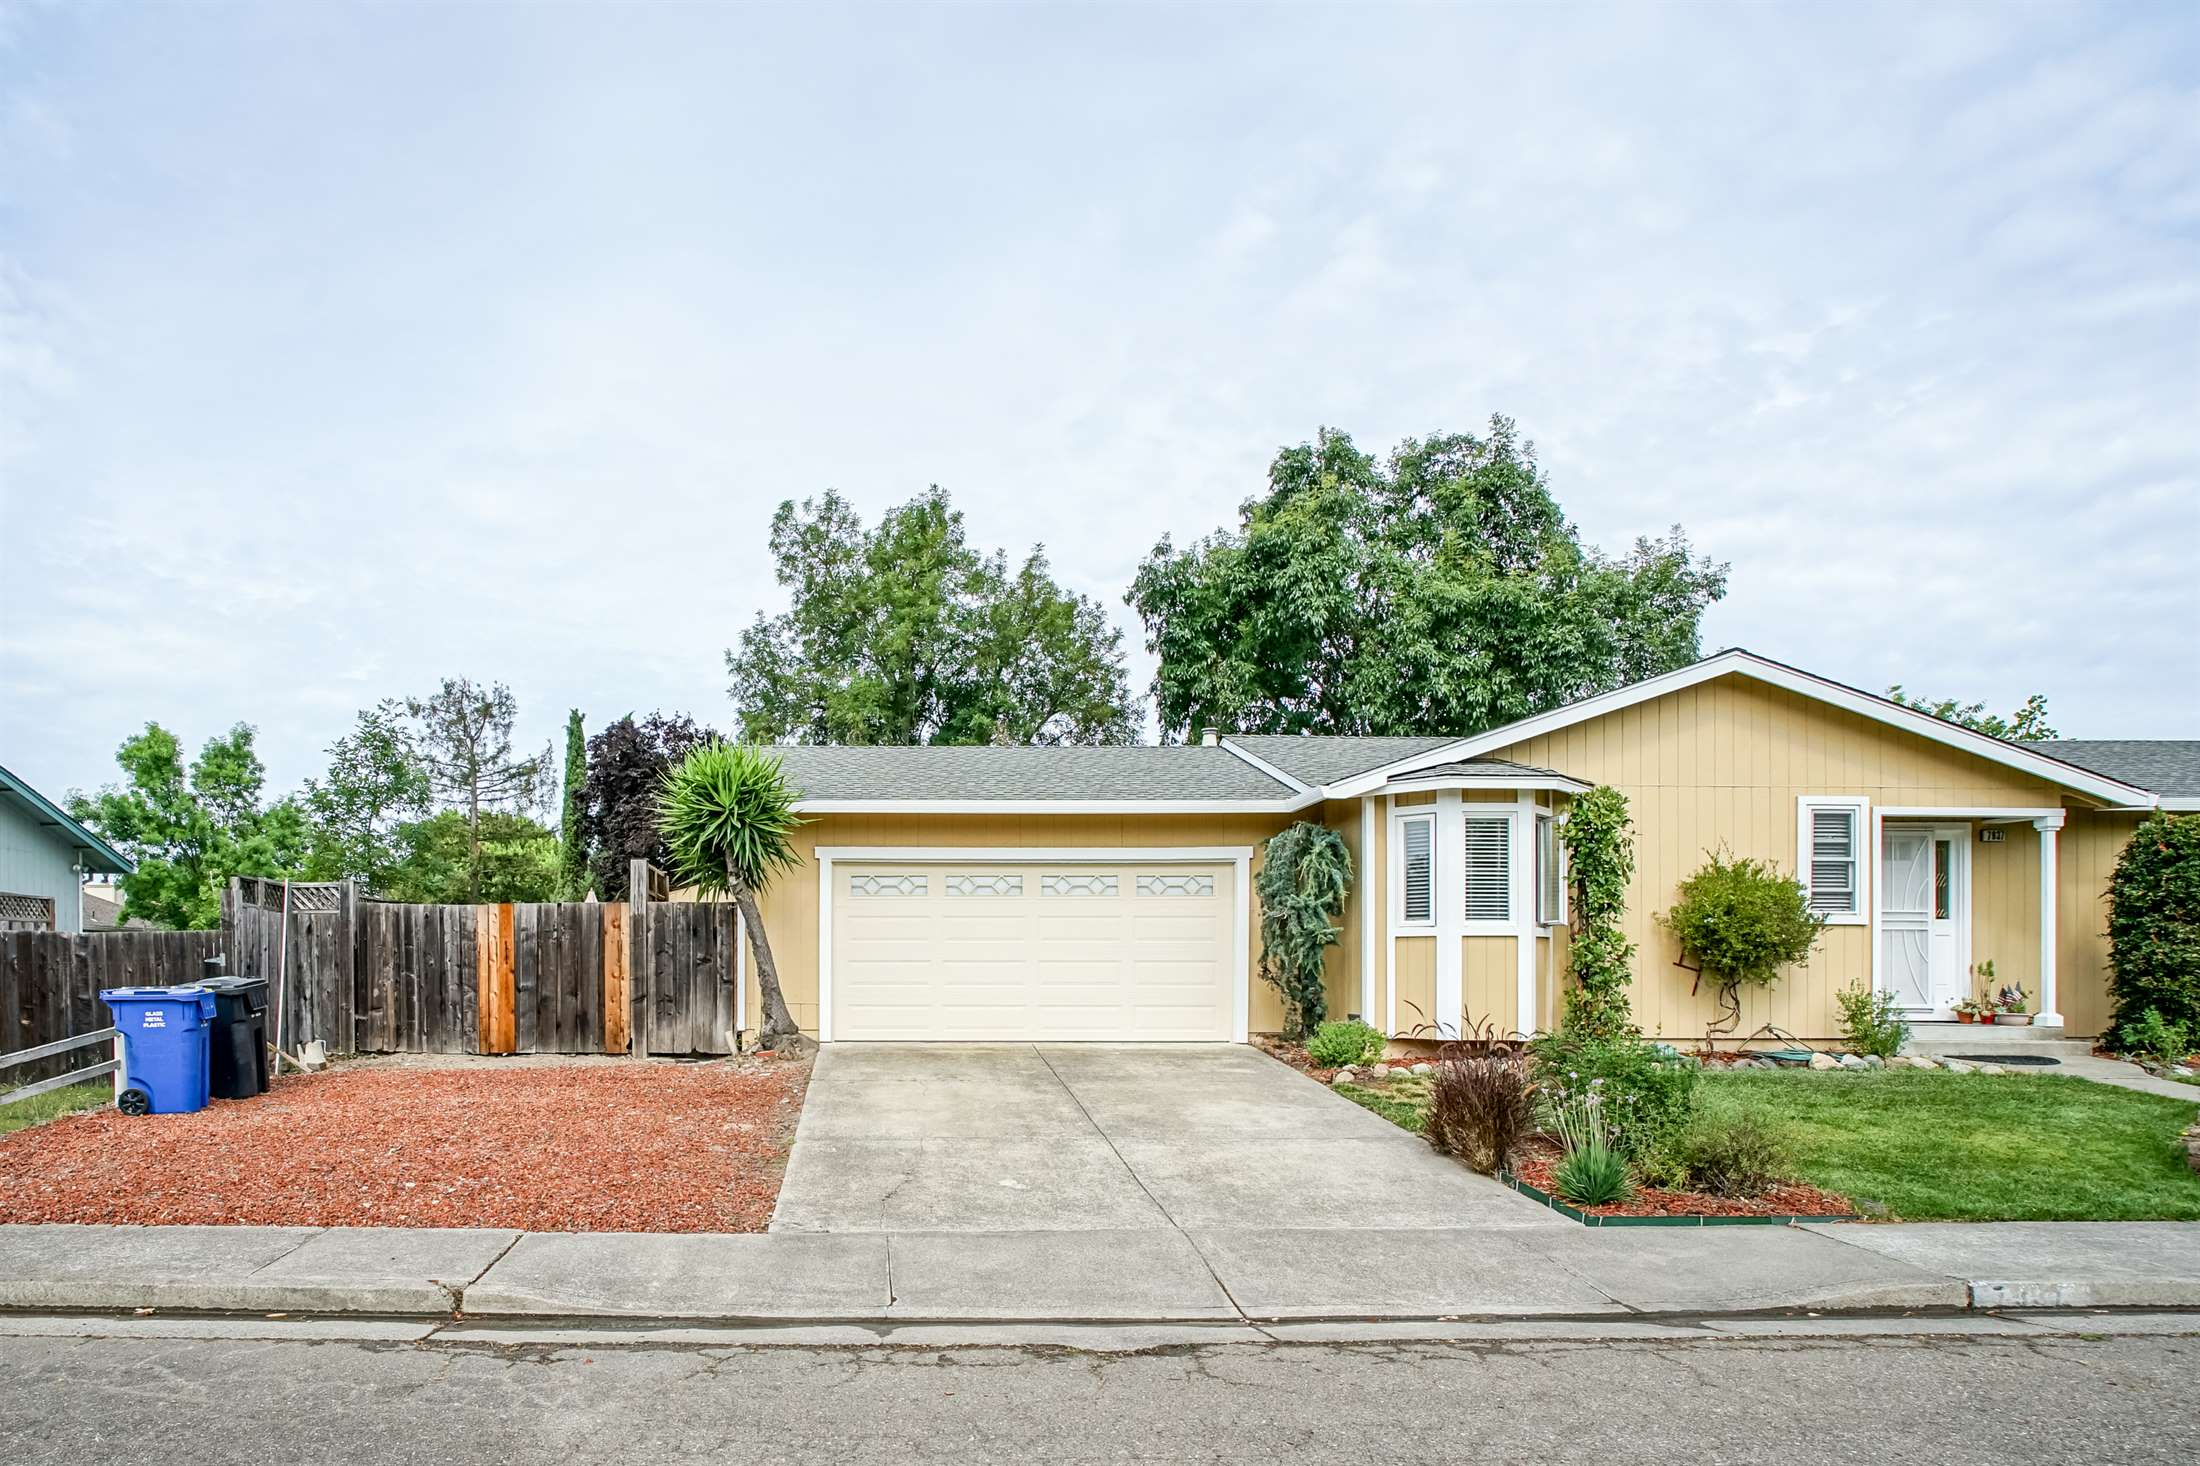 7937 Shira Street, Windsor, CA 95492